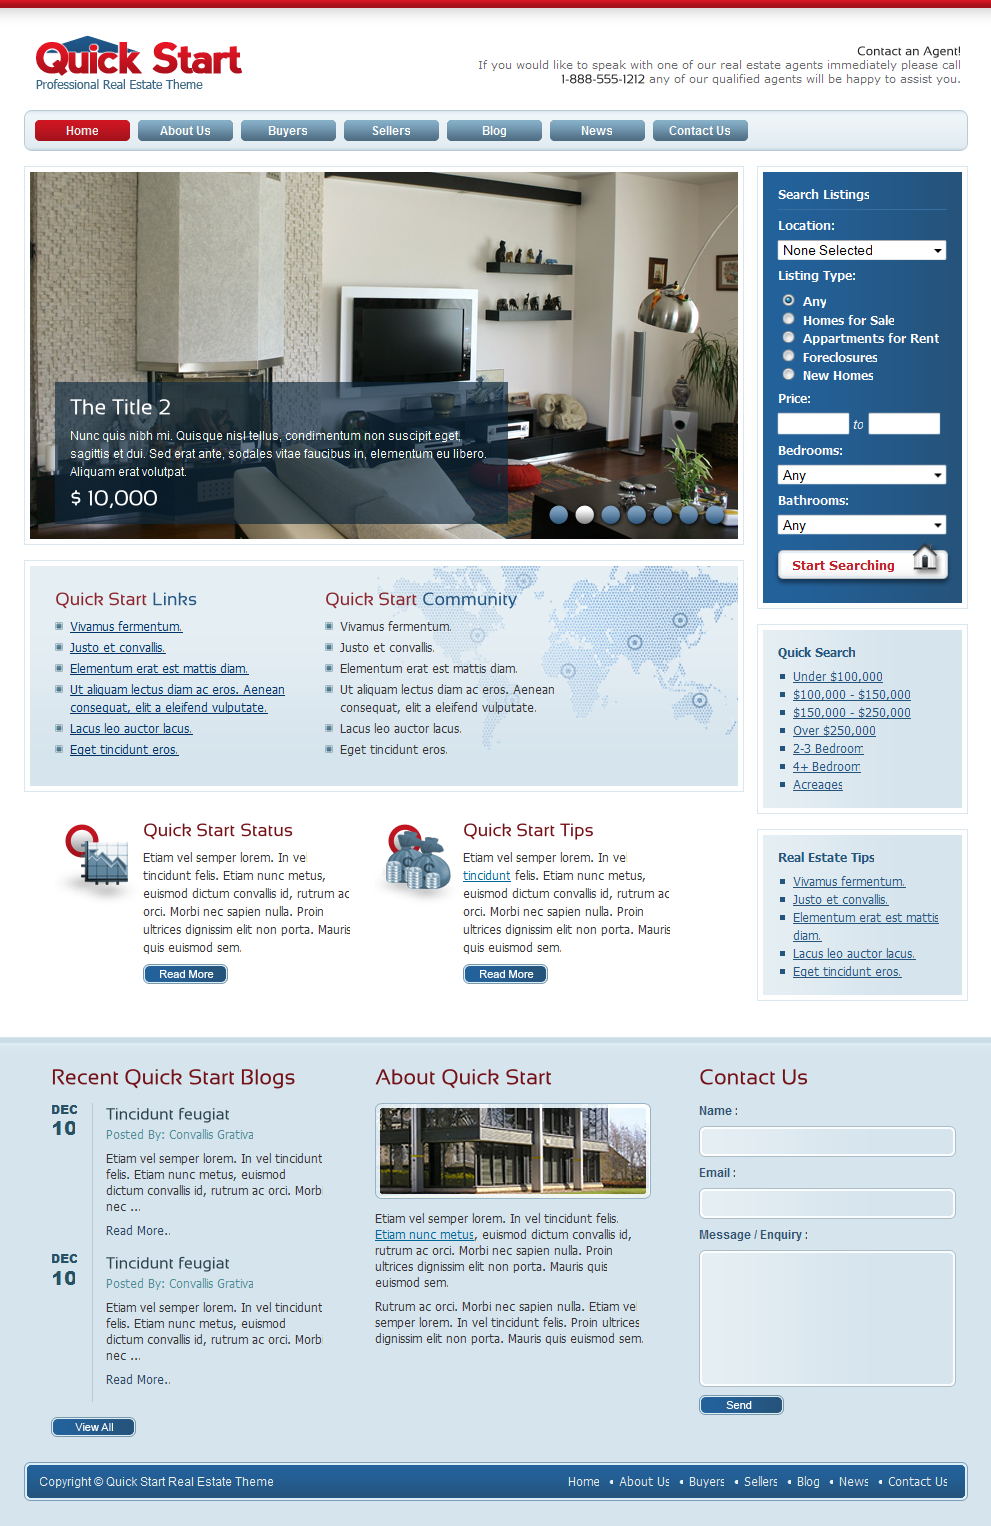 QuickStart Real Estate